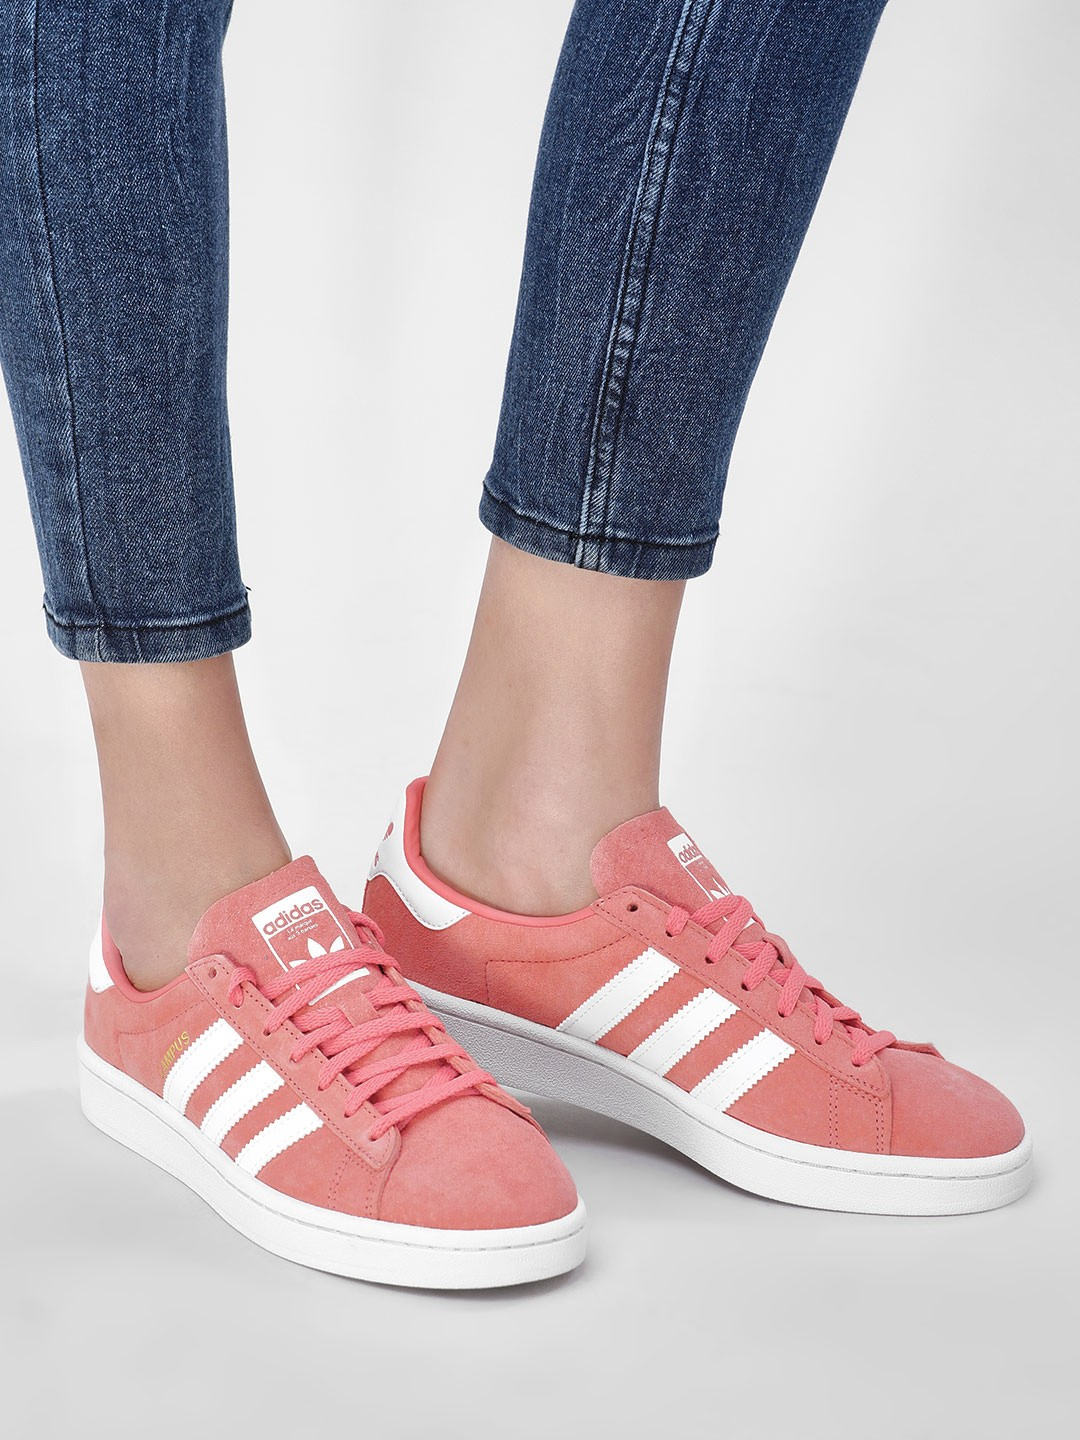 Adidas Originals Pink Campus Shoes 1